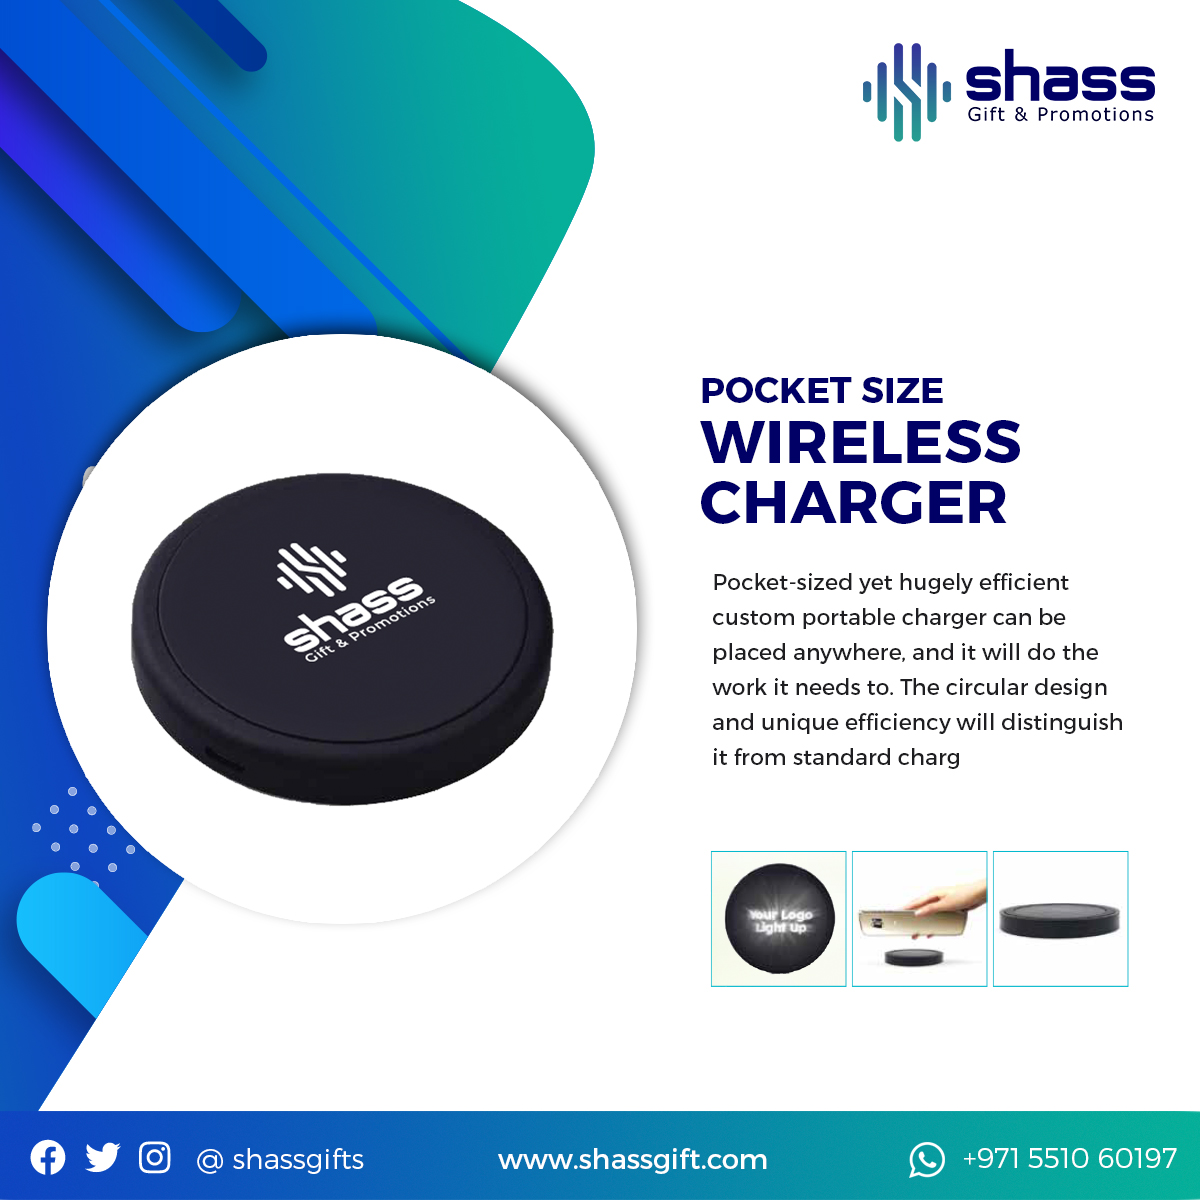 Pocket Size Wireless Charger